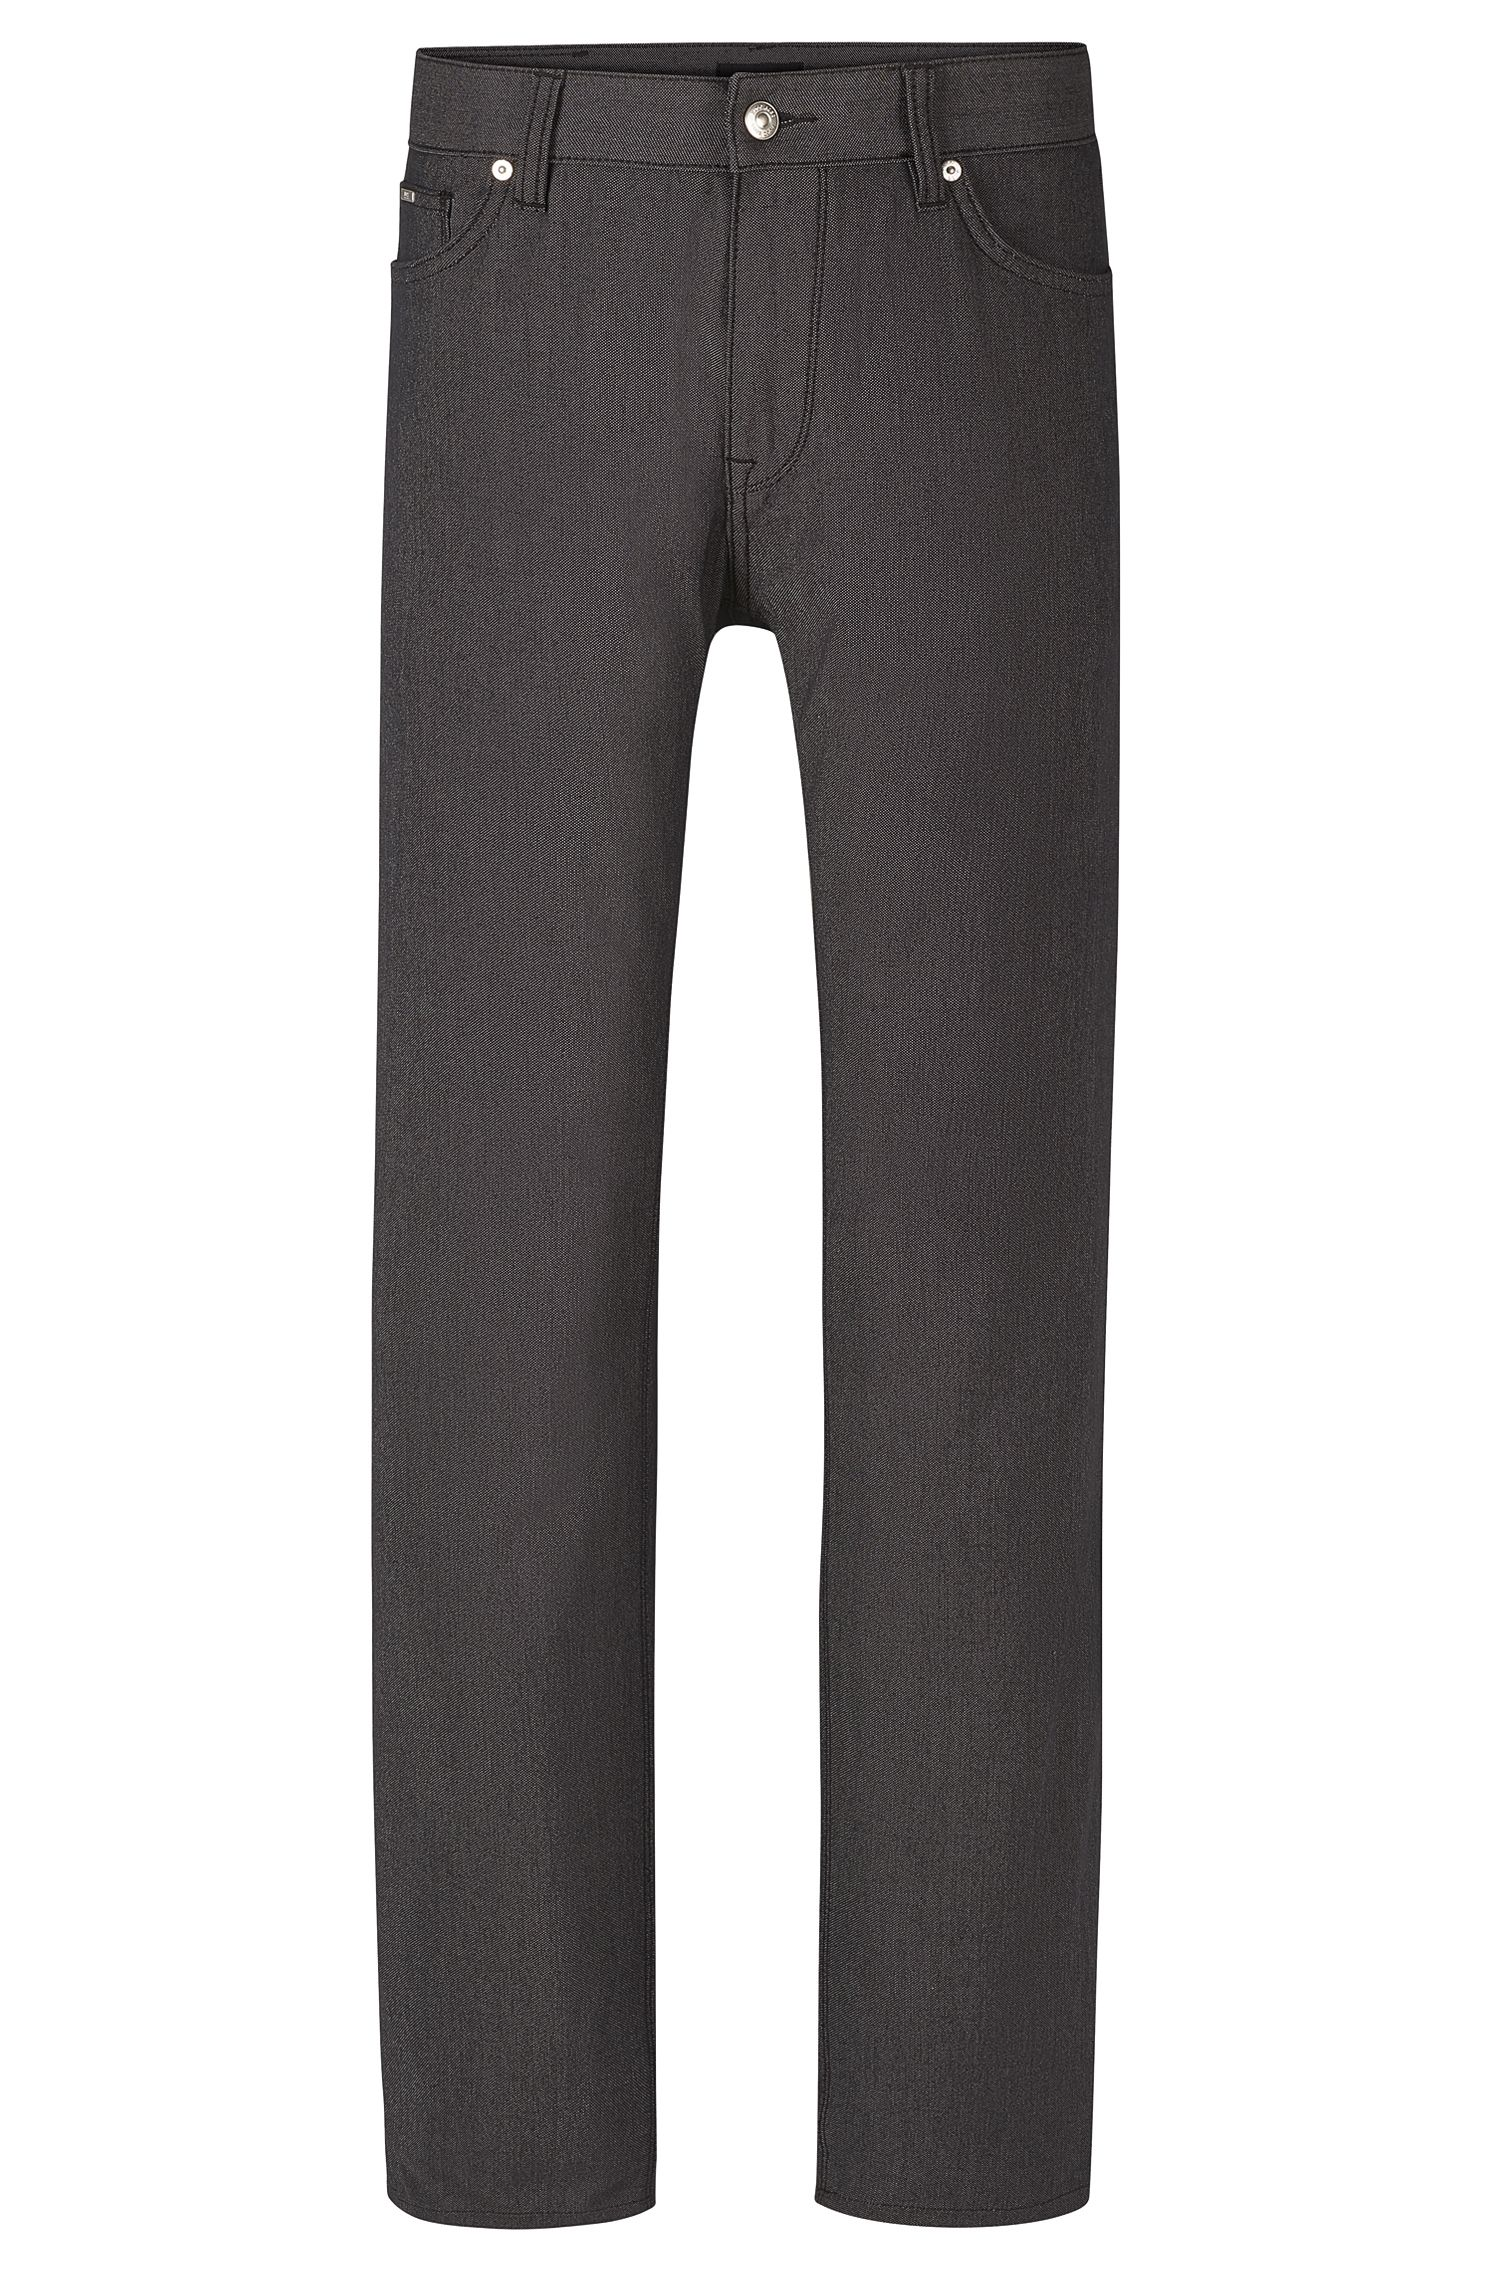 'Maine' | Regular Fit, Stretch Cotton Blend Pinpoint Trousers